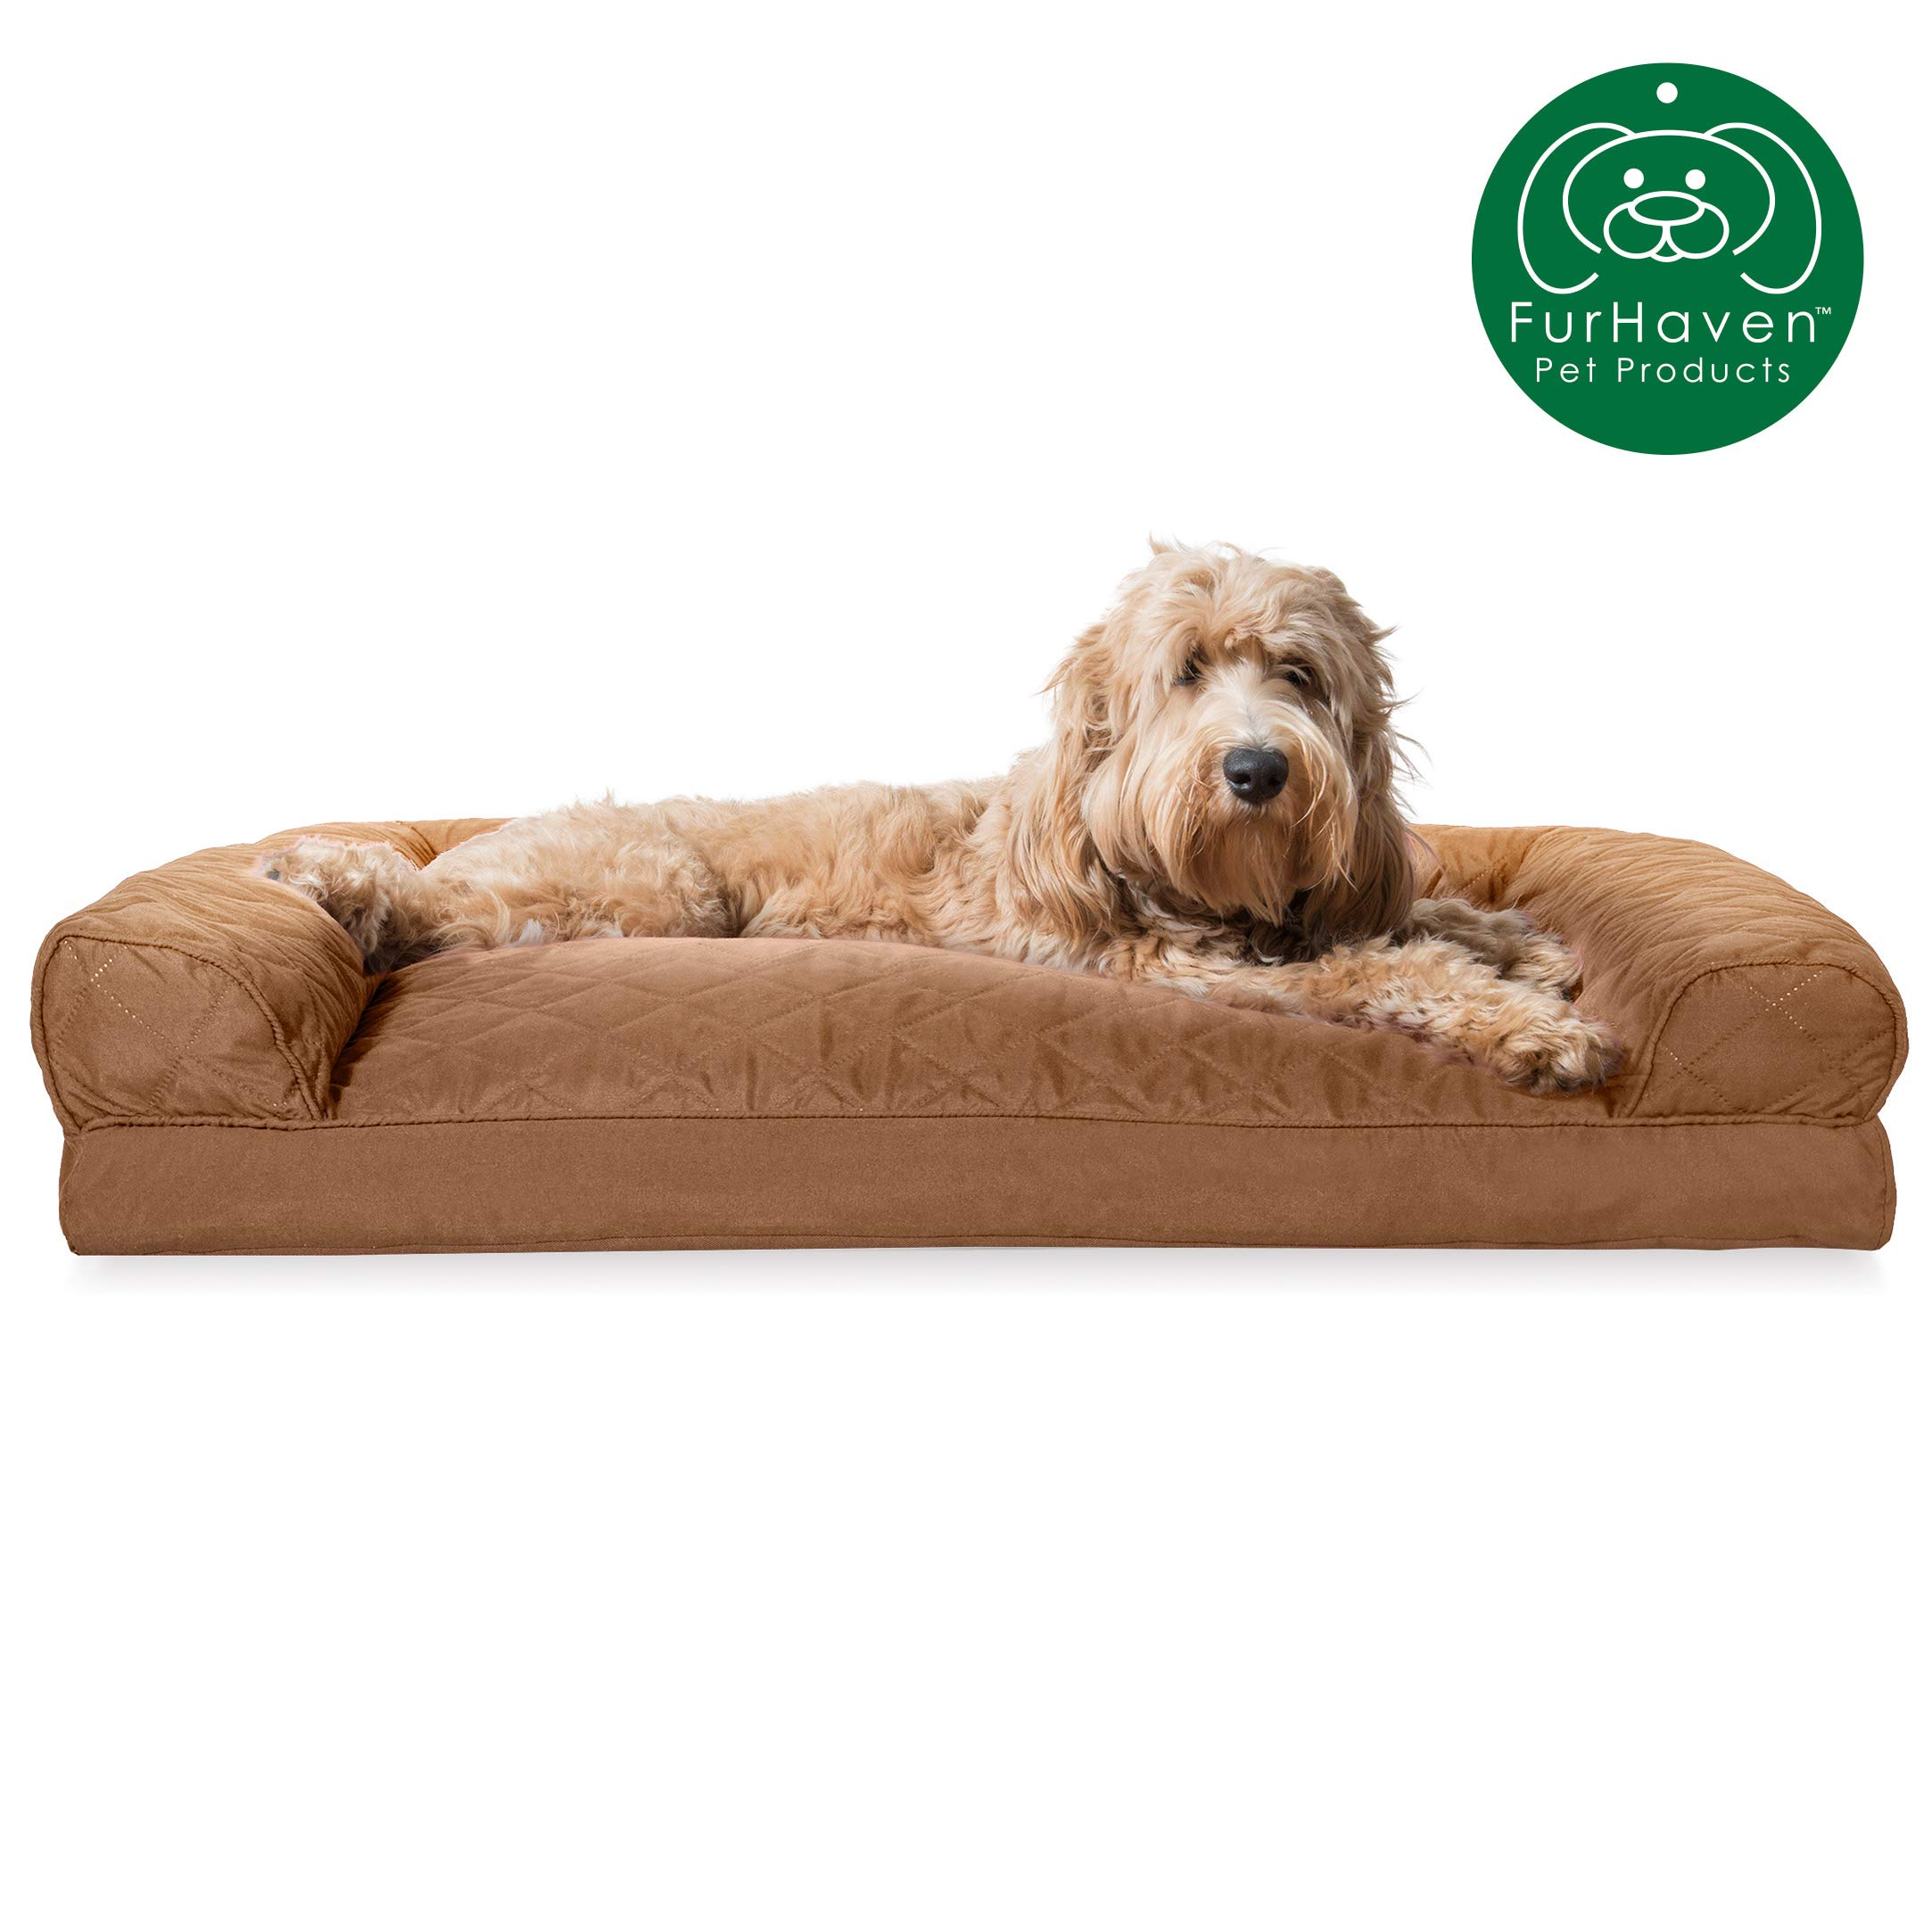 Furhaven Pet Dog Bed | Quilted Pillow Cushion Traditional Sofa-Style Living Room Couch Pet Bed w/ Removable Cover for Dogs & Cats, Toasted Brown, Large by Furhaven